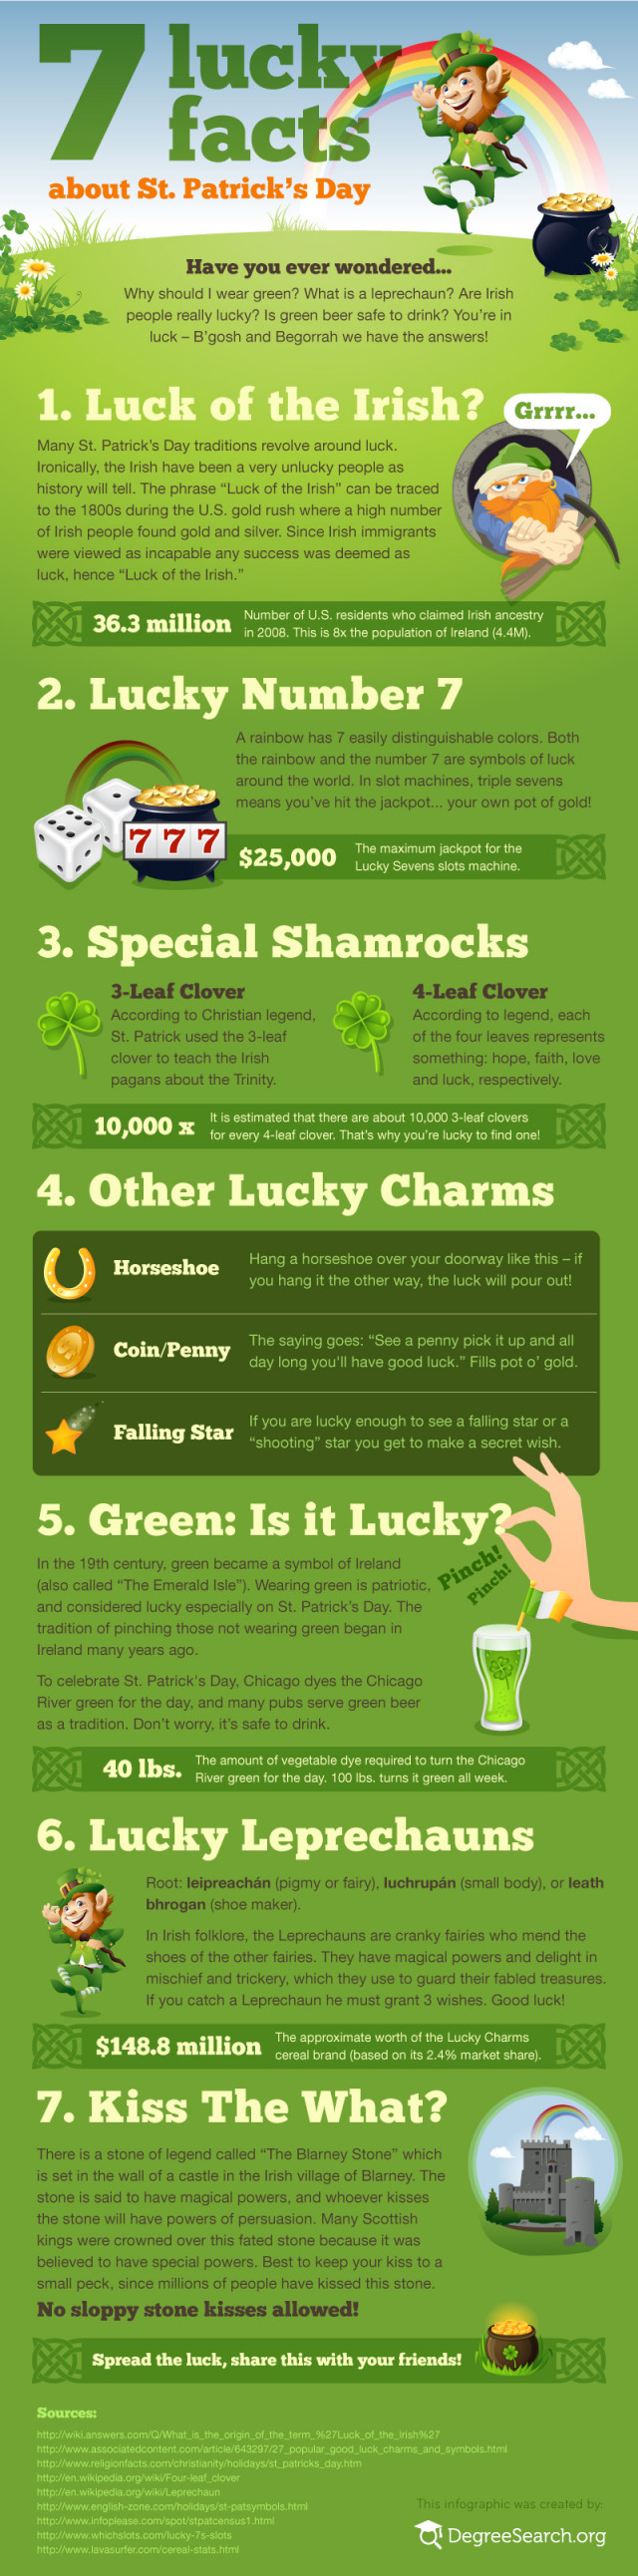 7 Lucky Facts About St. Patricks Day